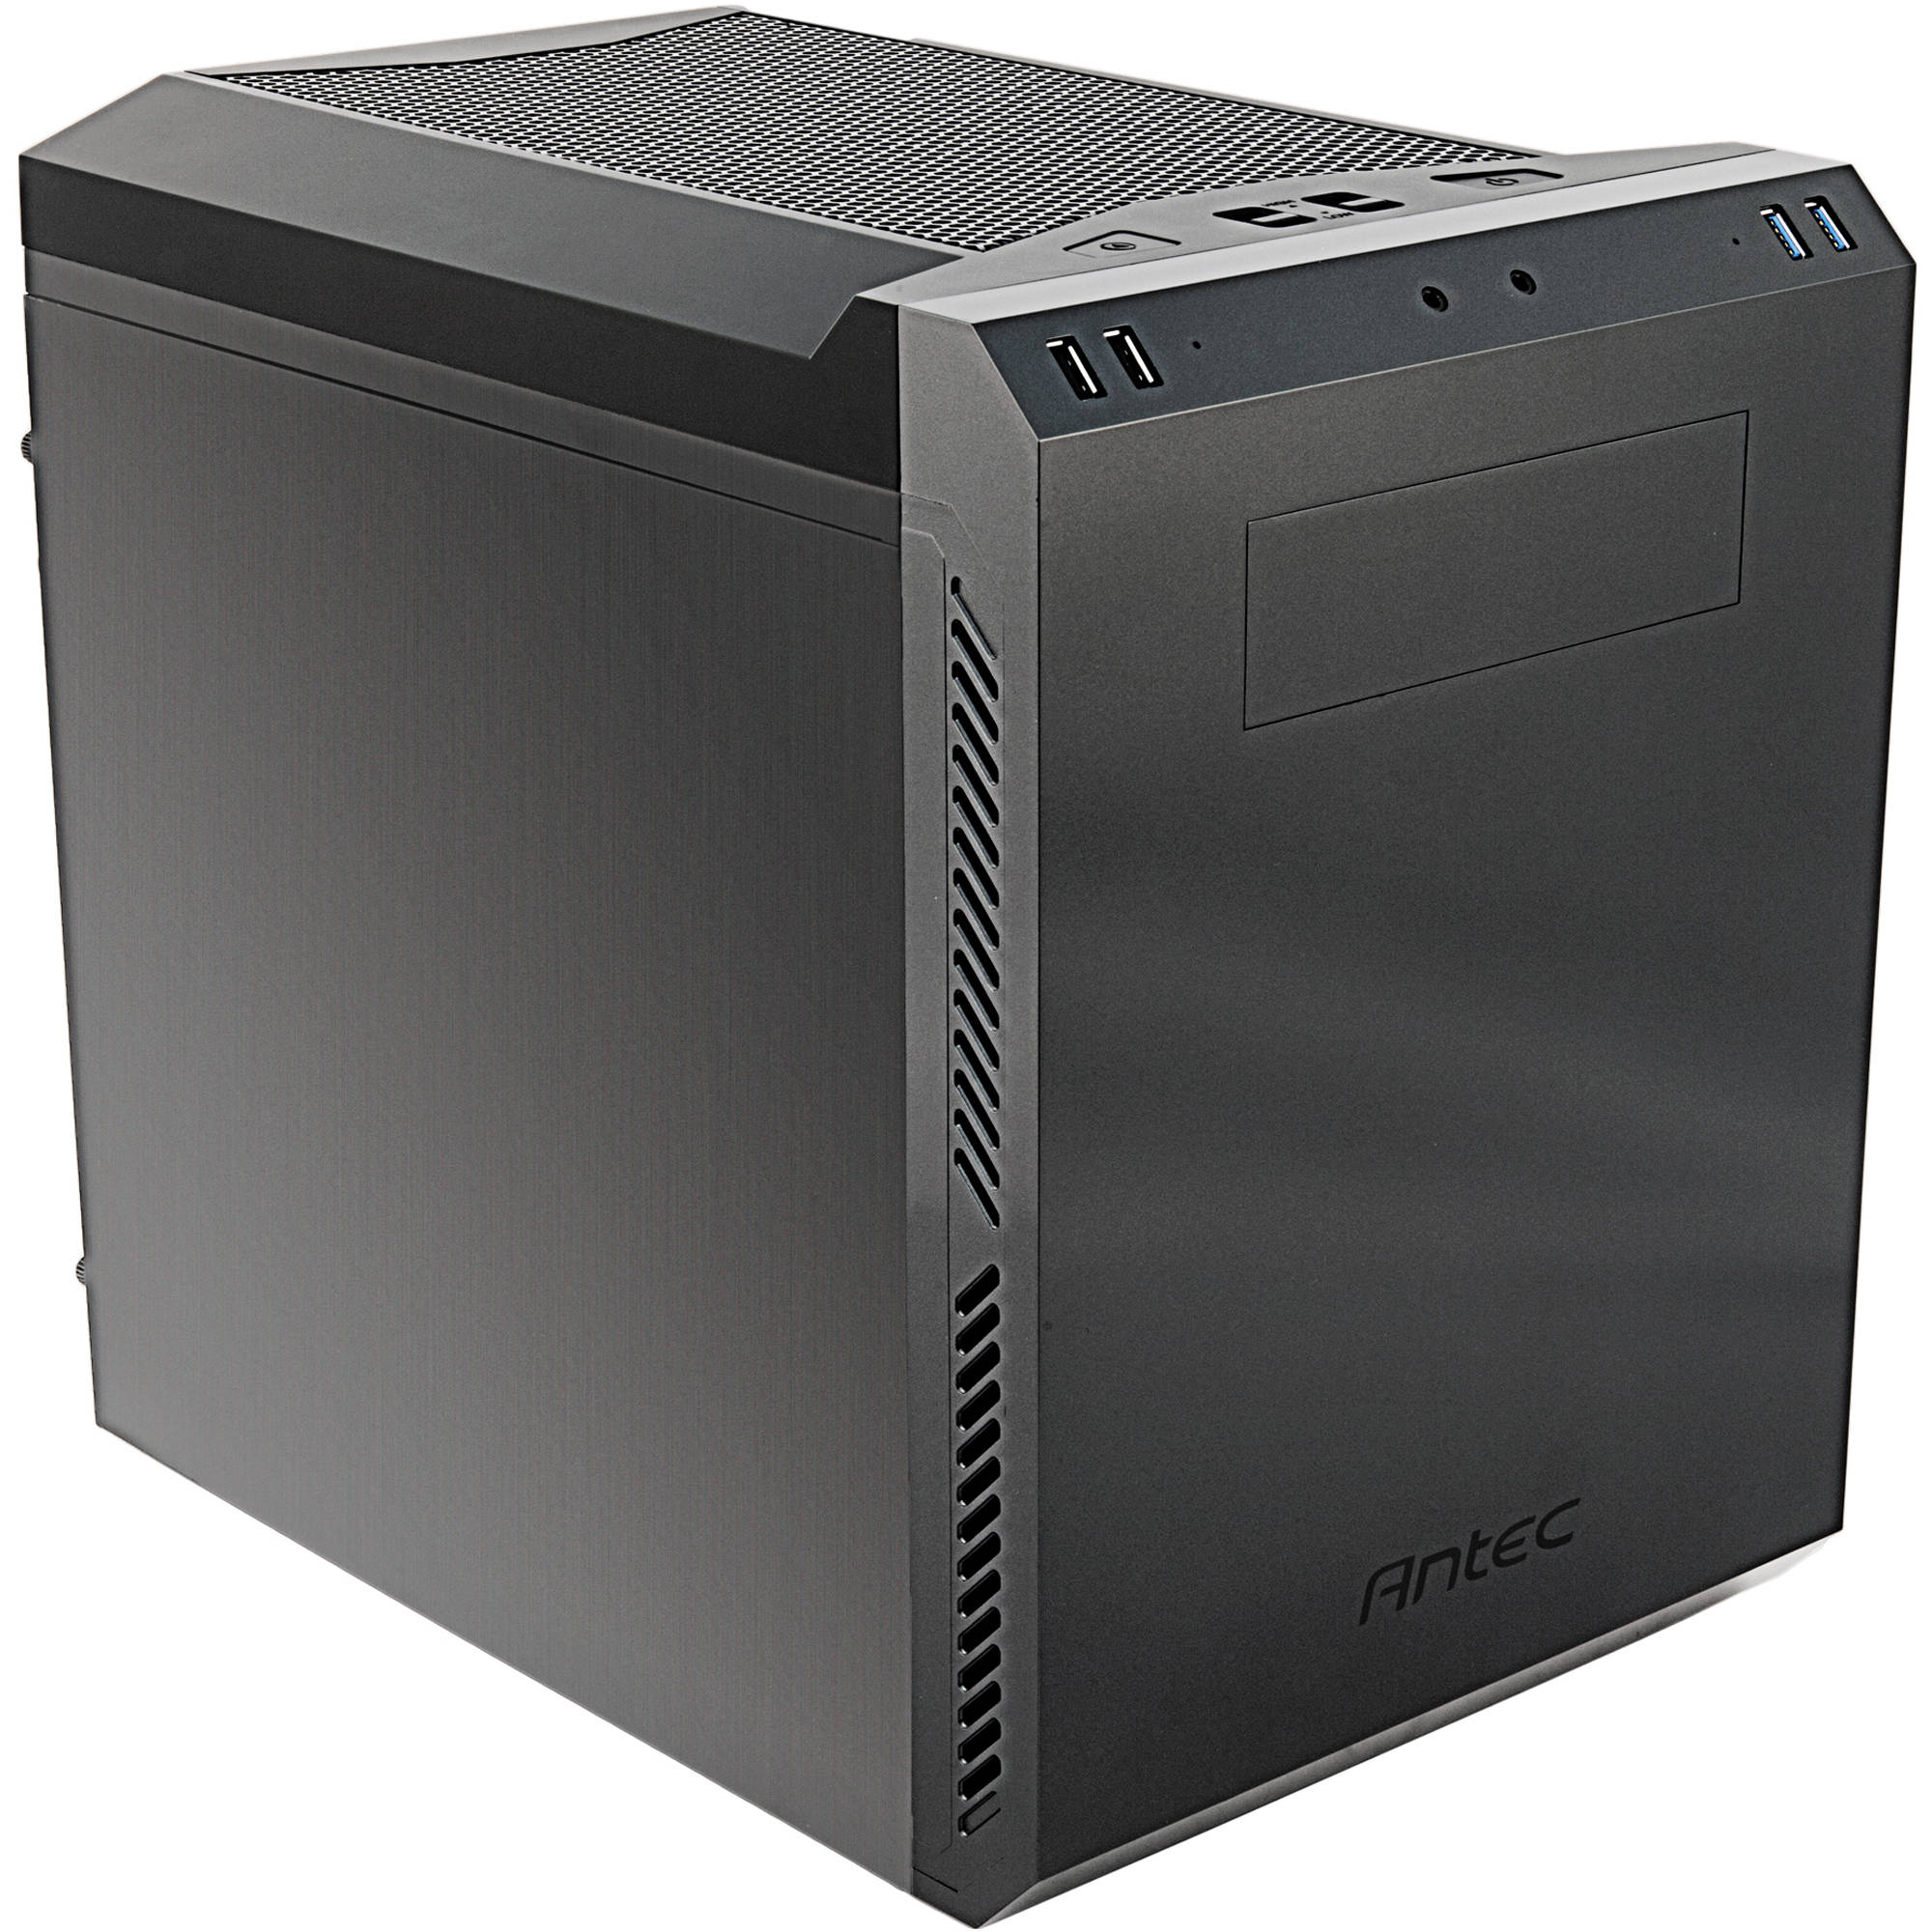 Photo of Antec P50 Case Review: The Advanced Cube That Will Not Tear Your Pocket